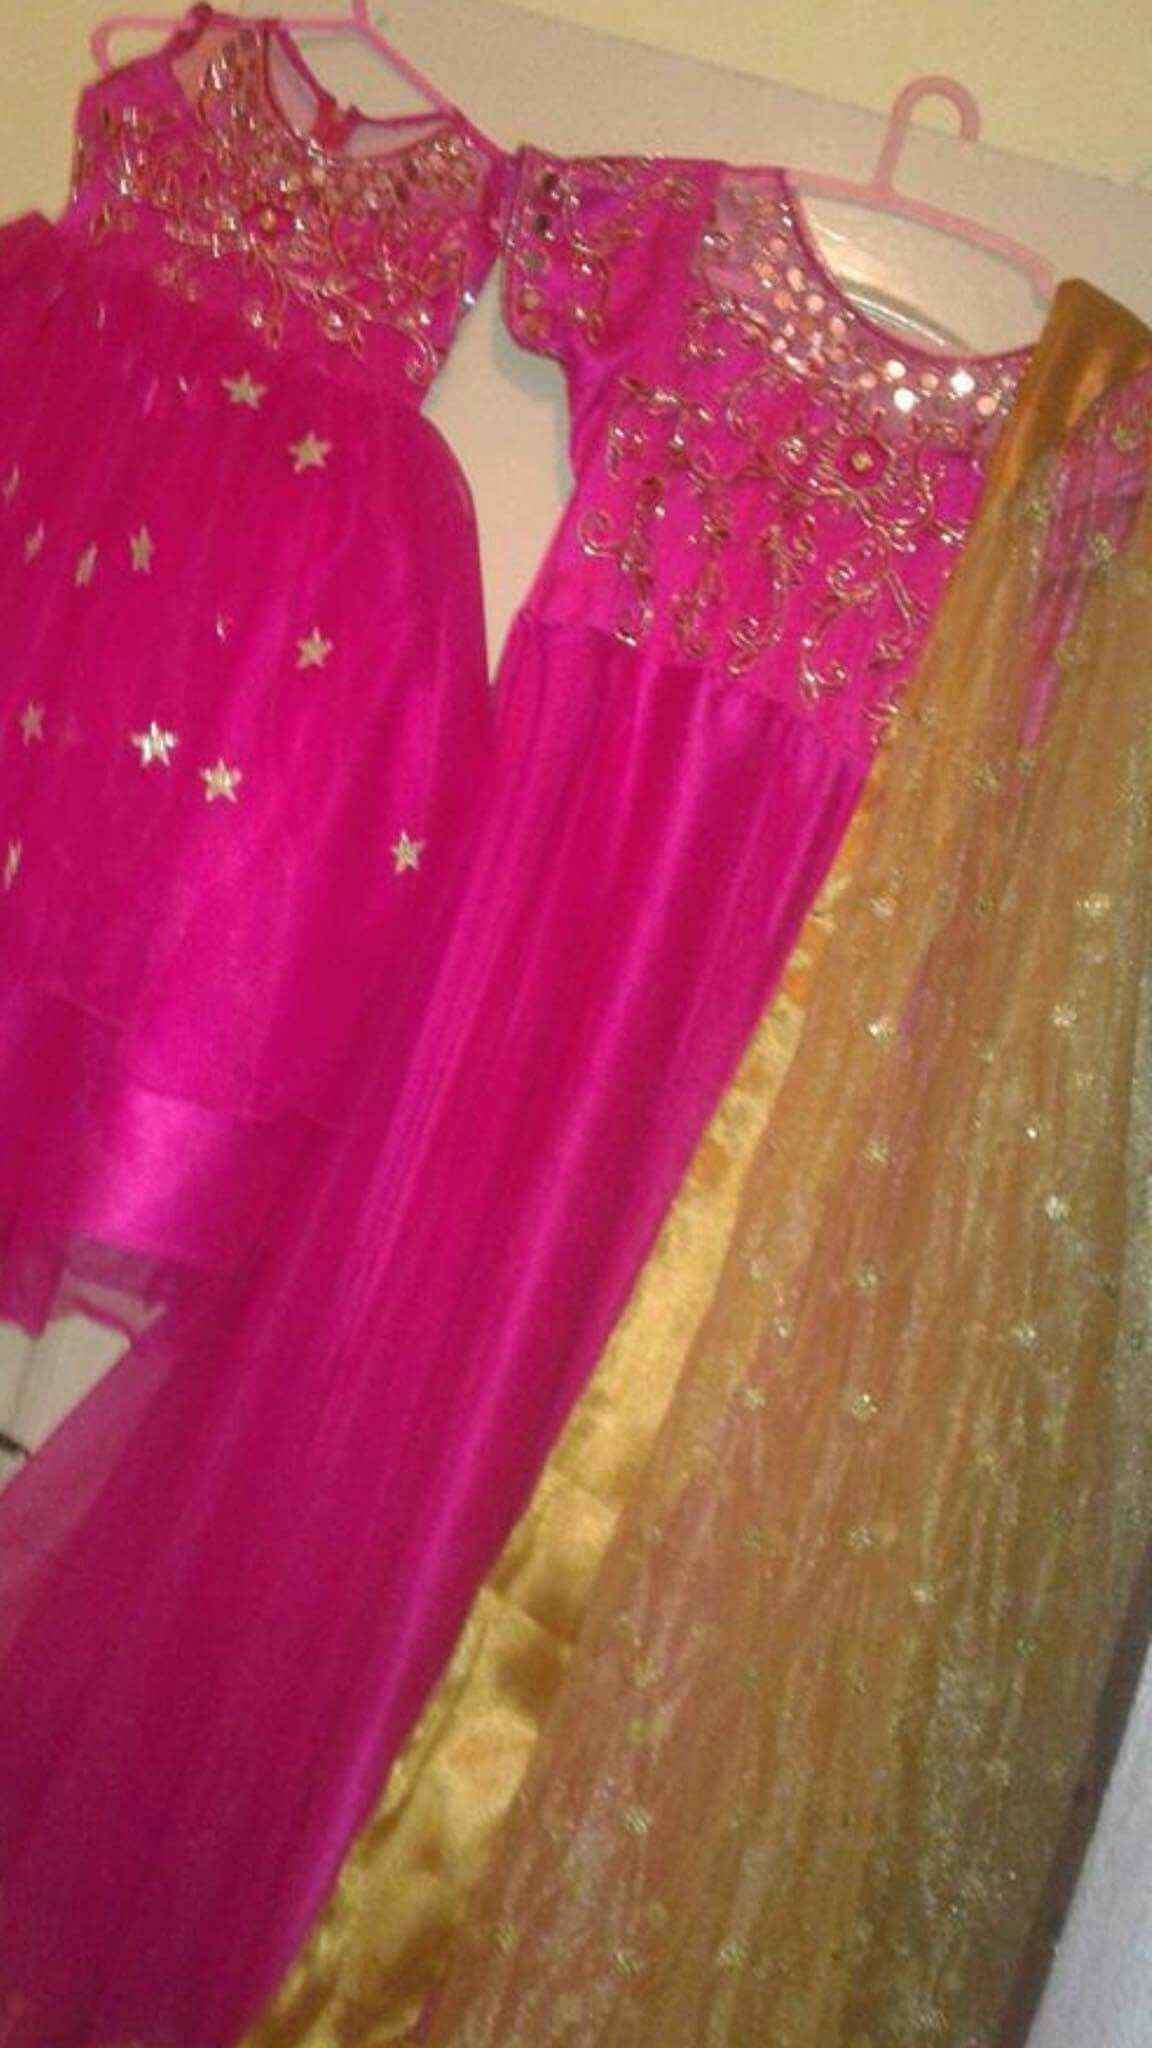 Mom and baby dress Net clothing and top of body Maggam work Contact